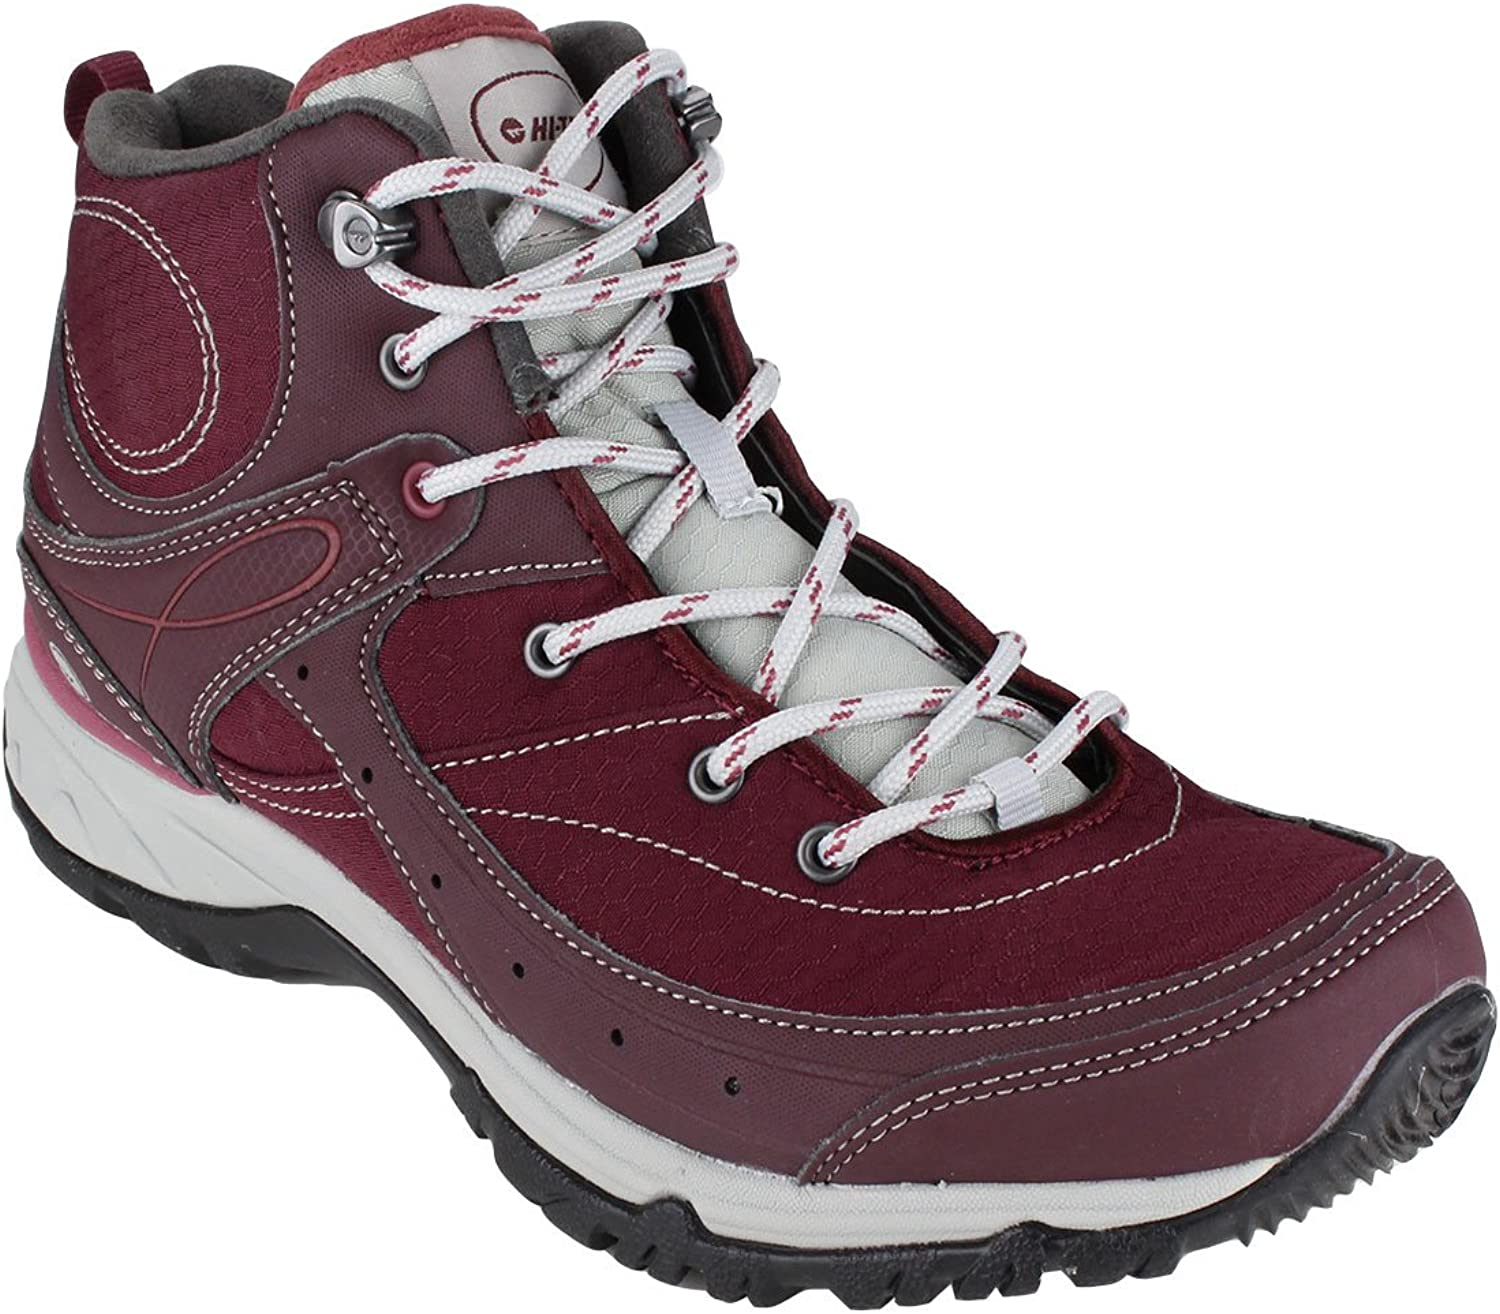 Hi-Tec Outdoor shoes Equilibrio Bijou Mid I Women